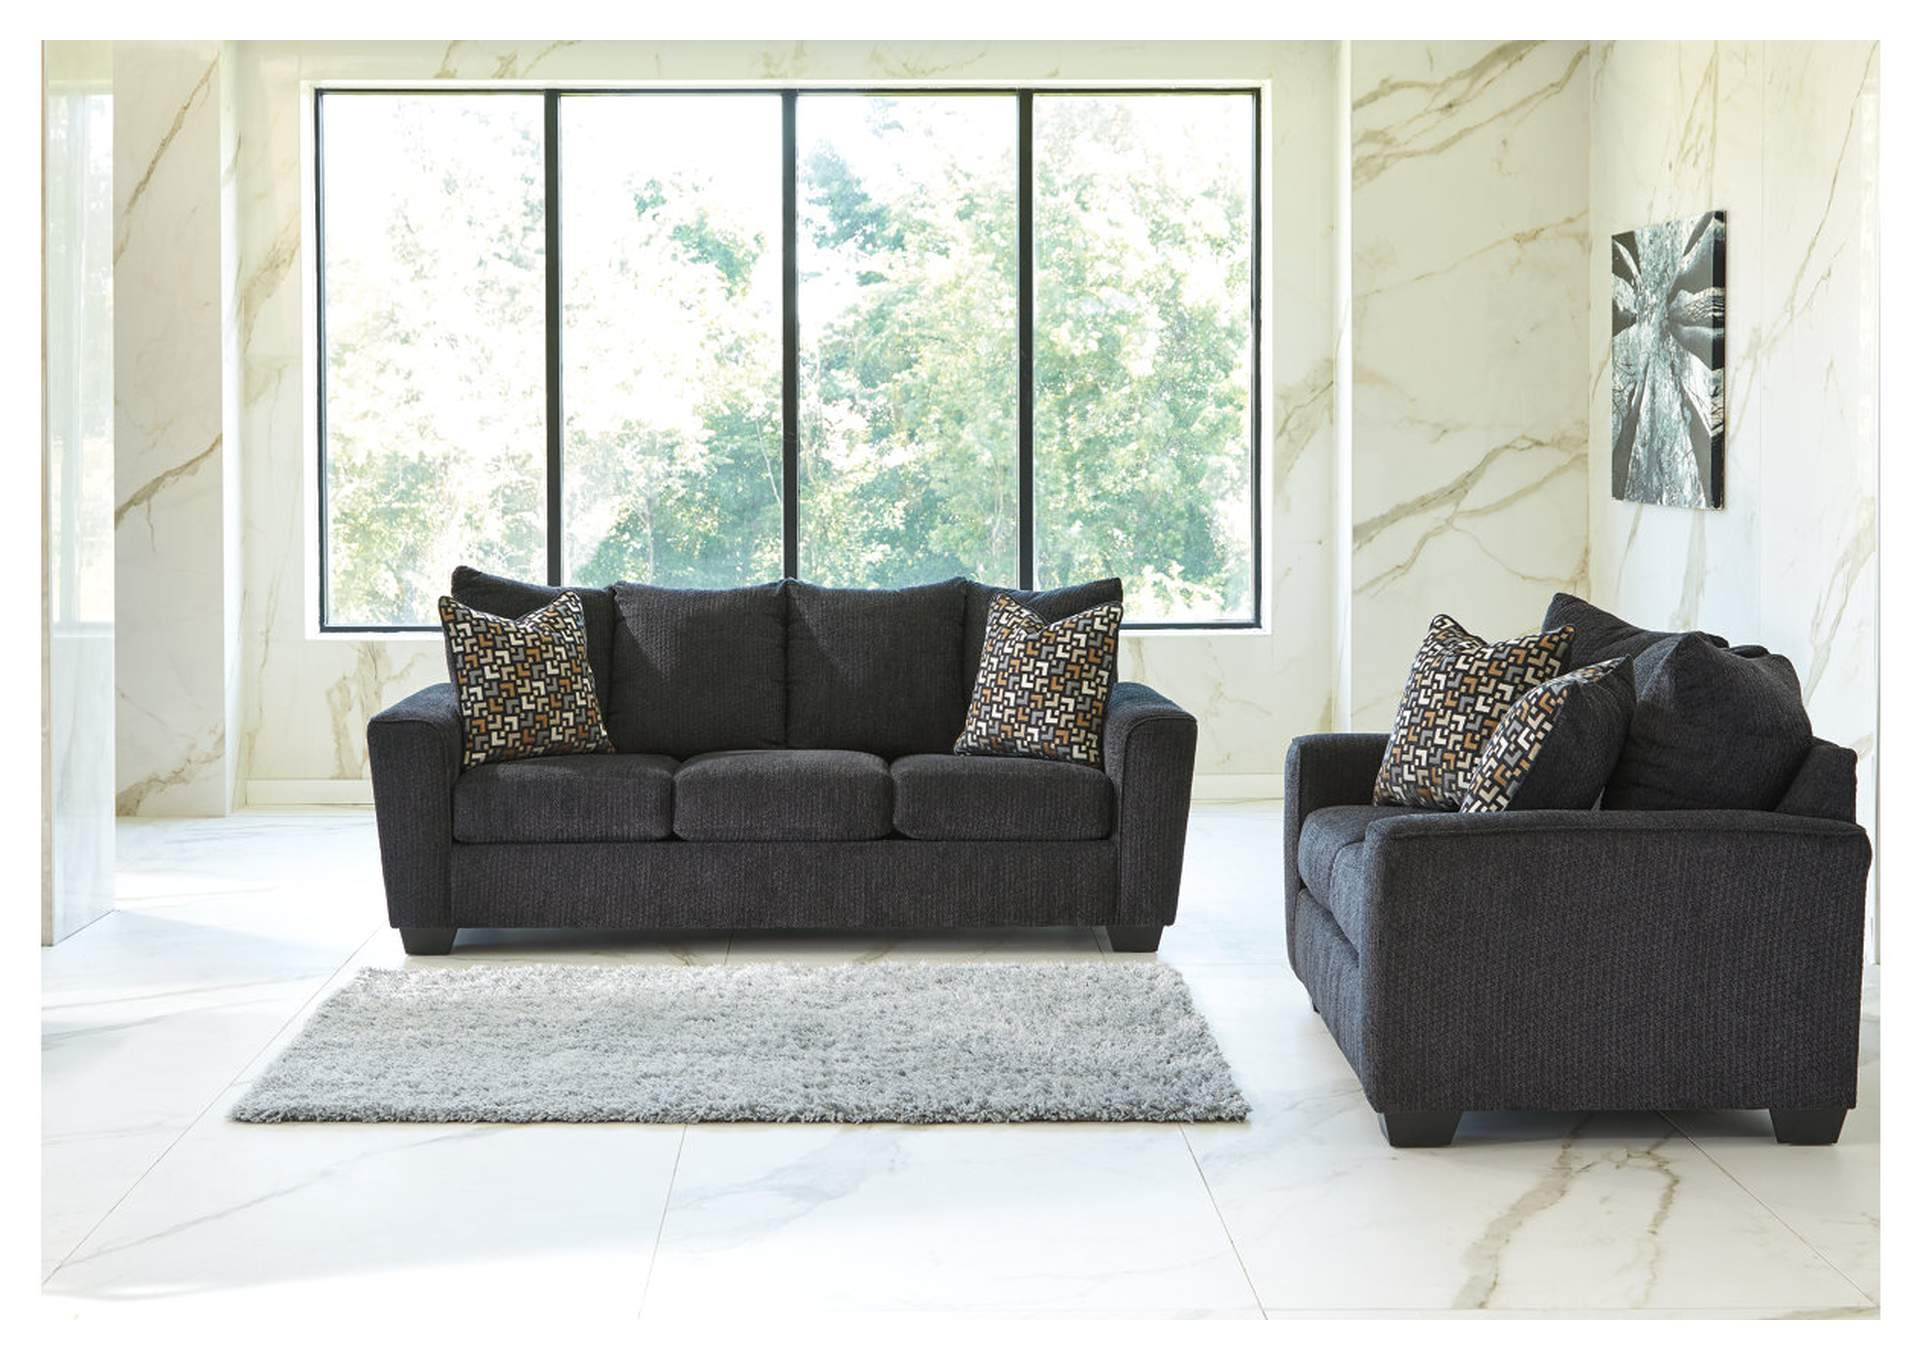 Wixon Slate Sofa and Loveseat,Benchcraft